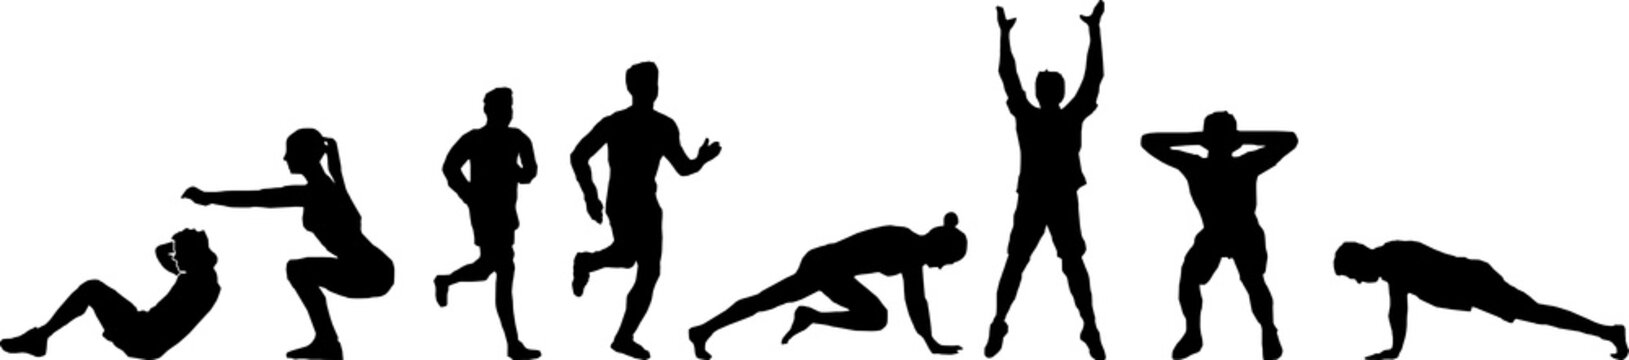 People Fitness Workout Silhoutte